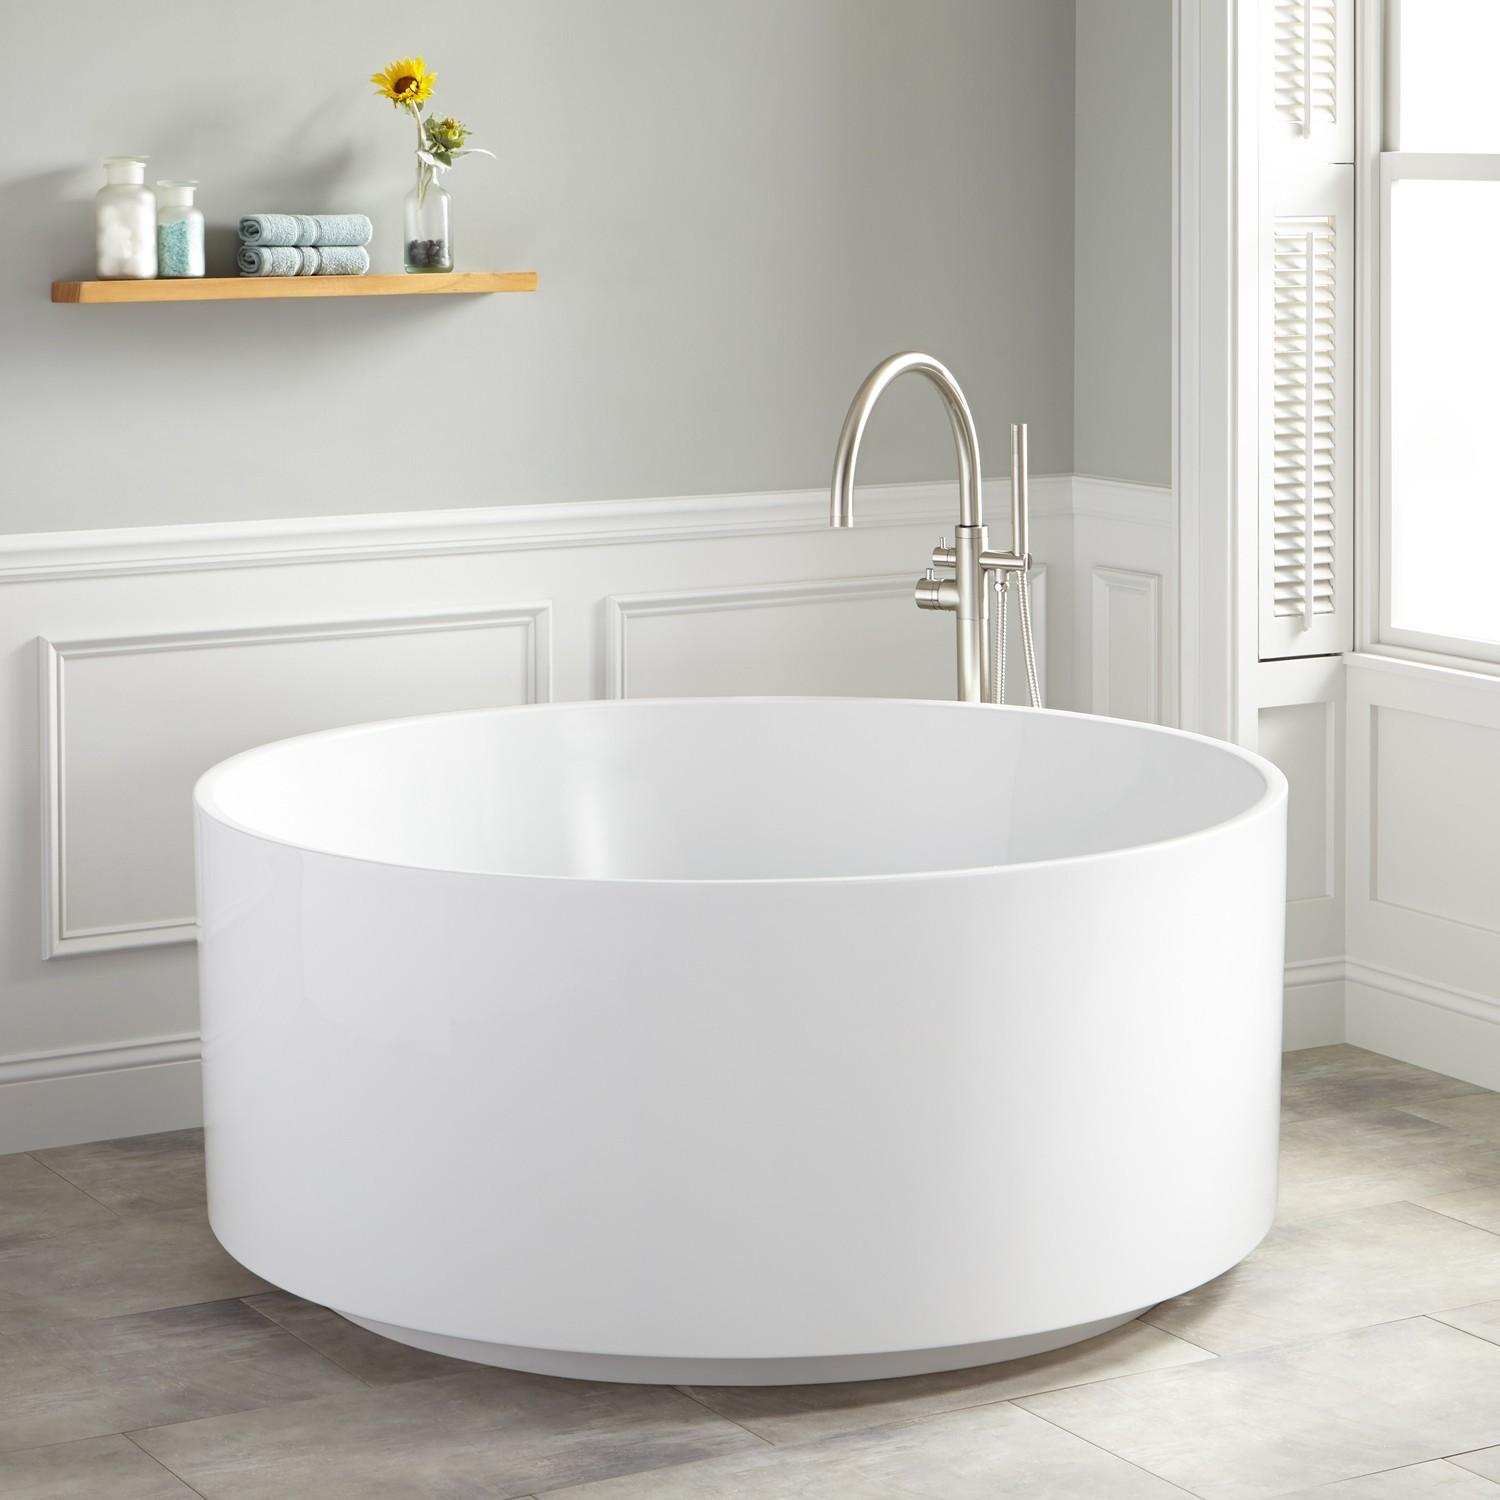 Dempsey Round Acrylic Freestanding Tub Bathroom